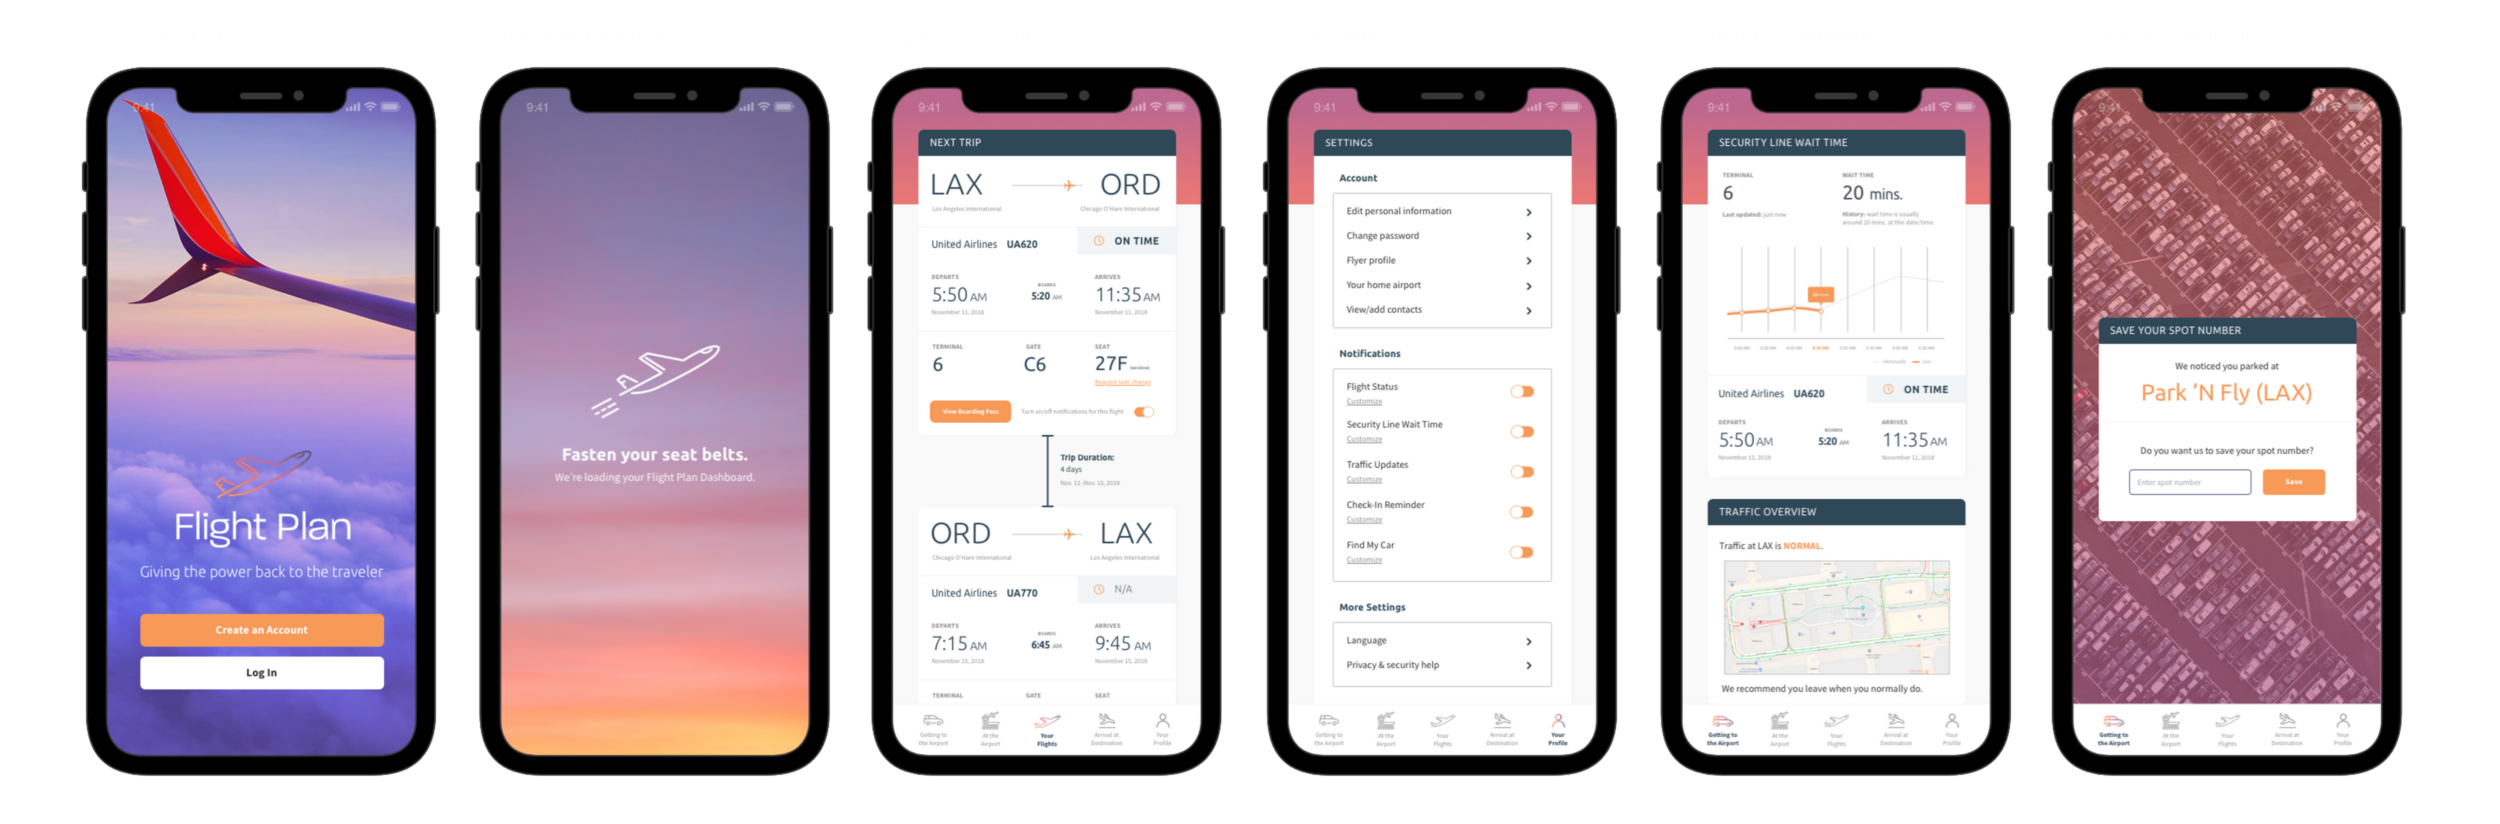 A preview of Flight Plan screens with branding and UI plugged in.